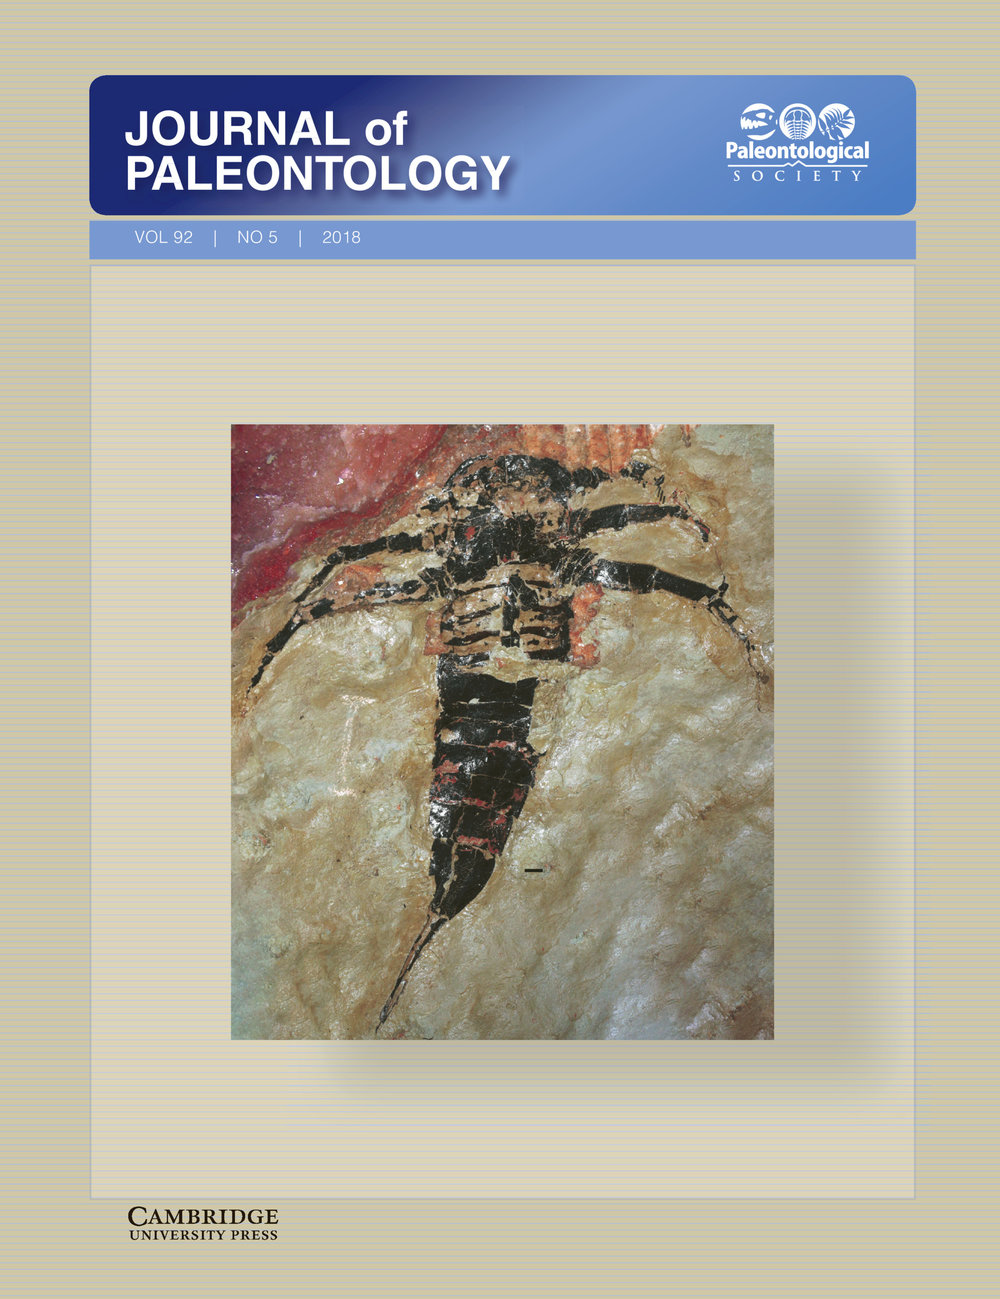 Soligorskopterus  on the cover of  Journal of Paleontology